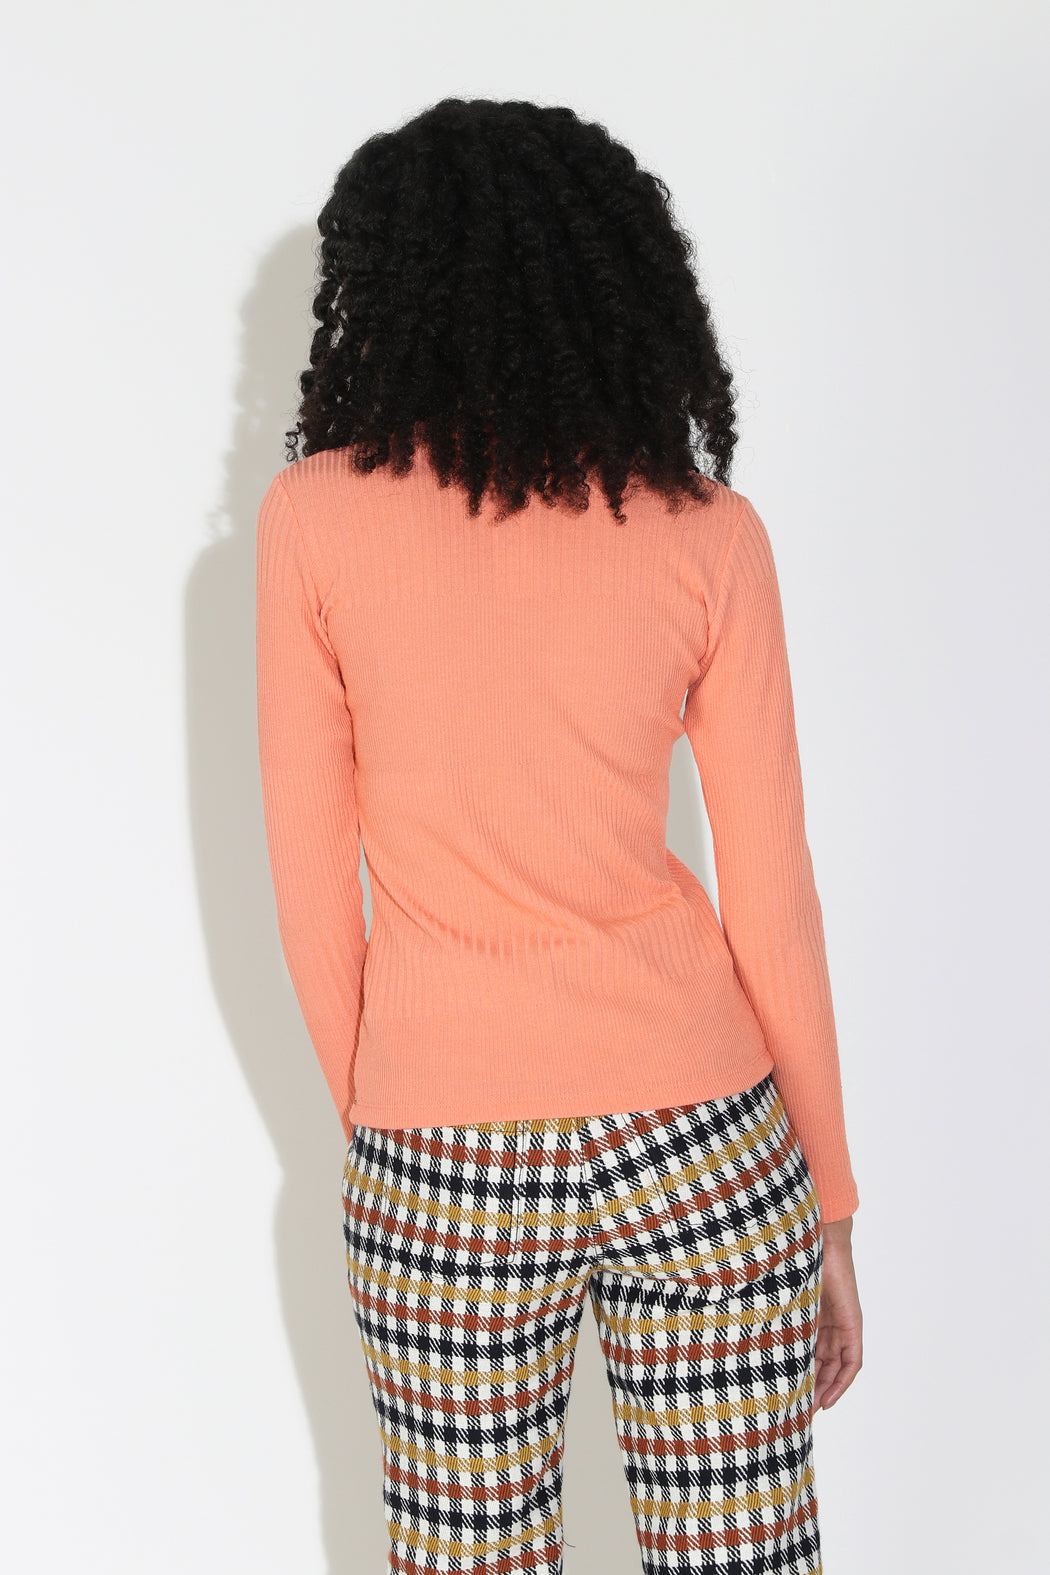 No.6 Stellan Crewneck in Apricot Knit Rib